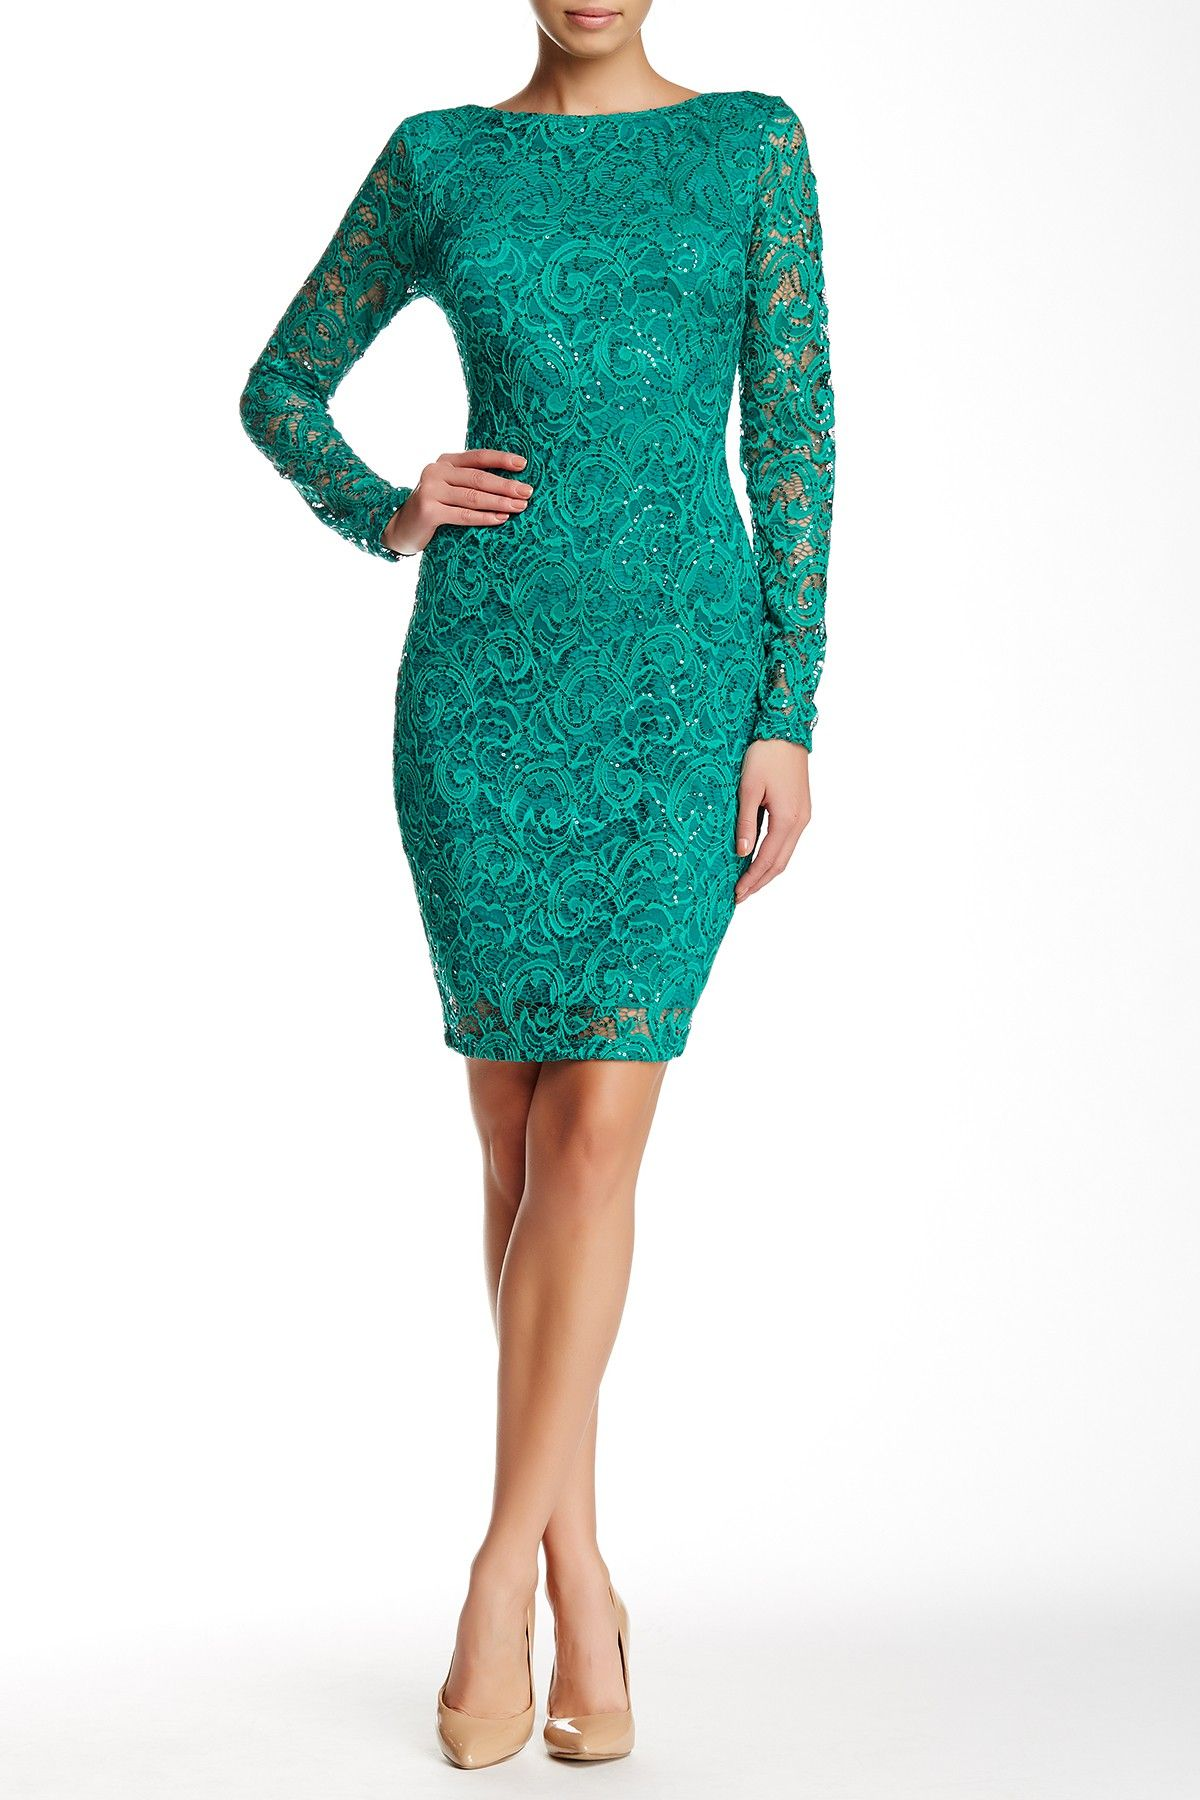 Marina Scoop Back Lace Cocktail Dress Cocktail Dress Lace